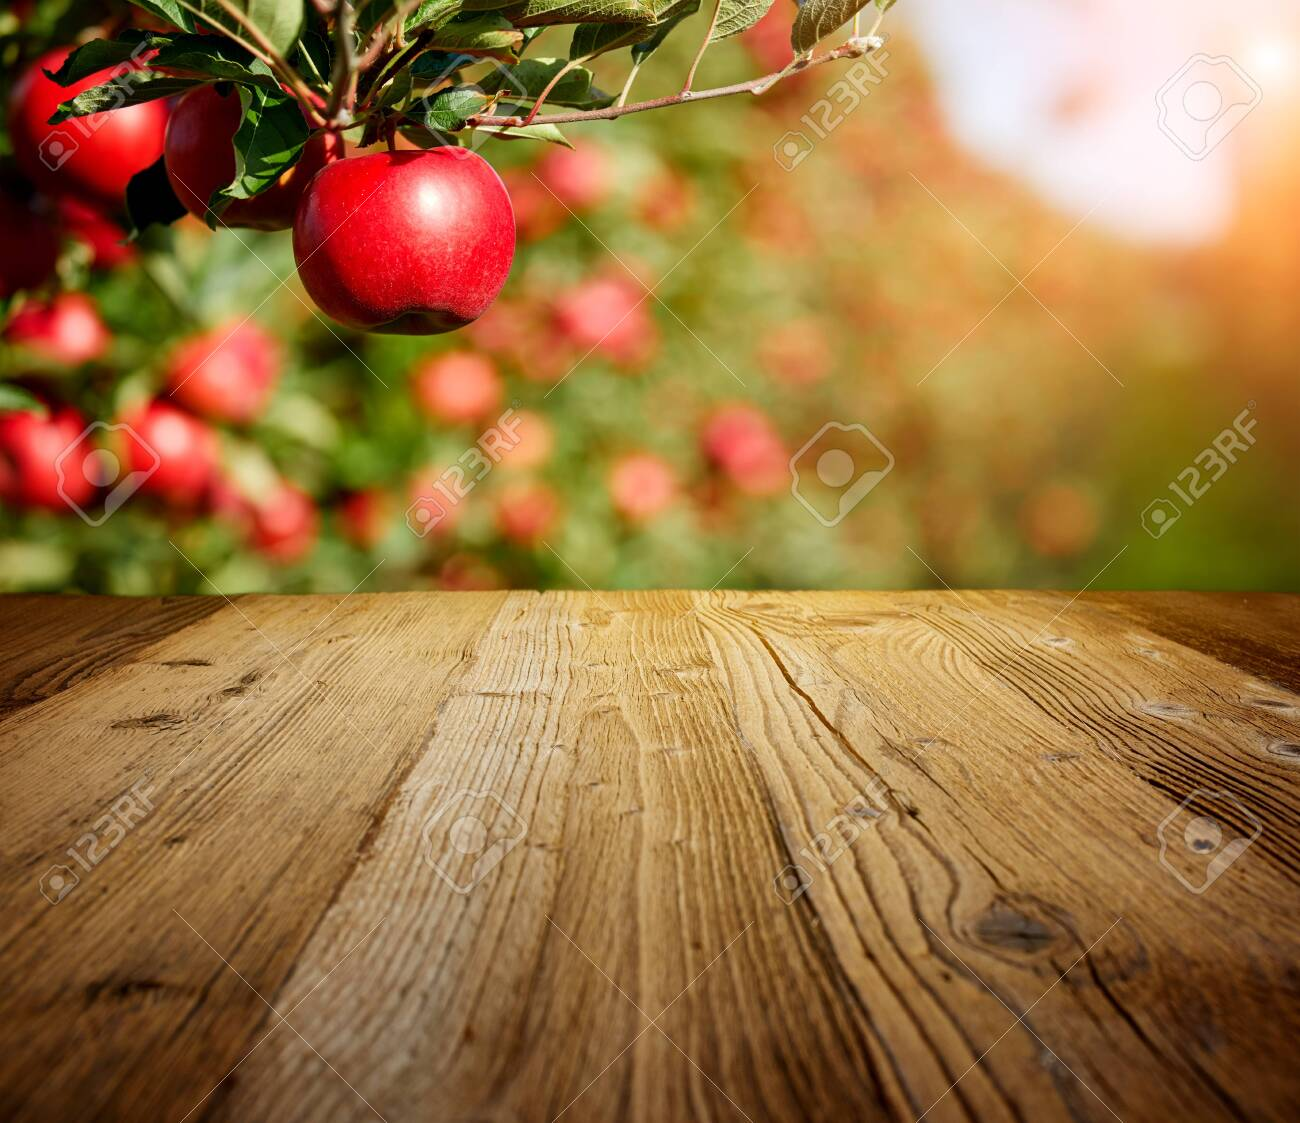 table space and apple garden of trees and fruits - 130205933